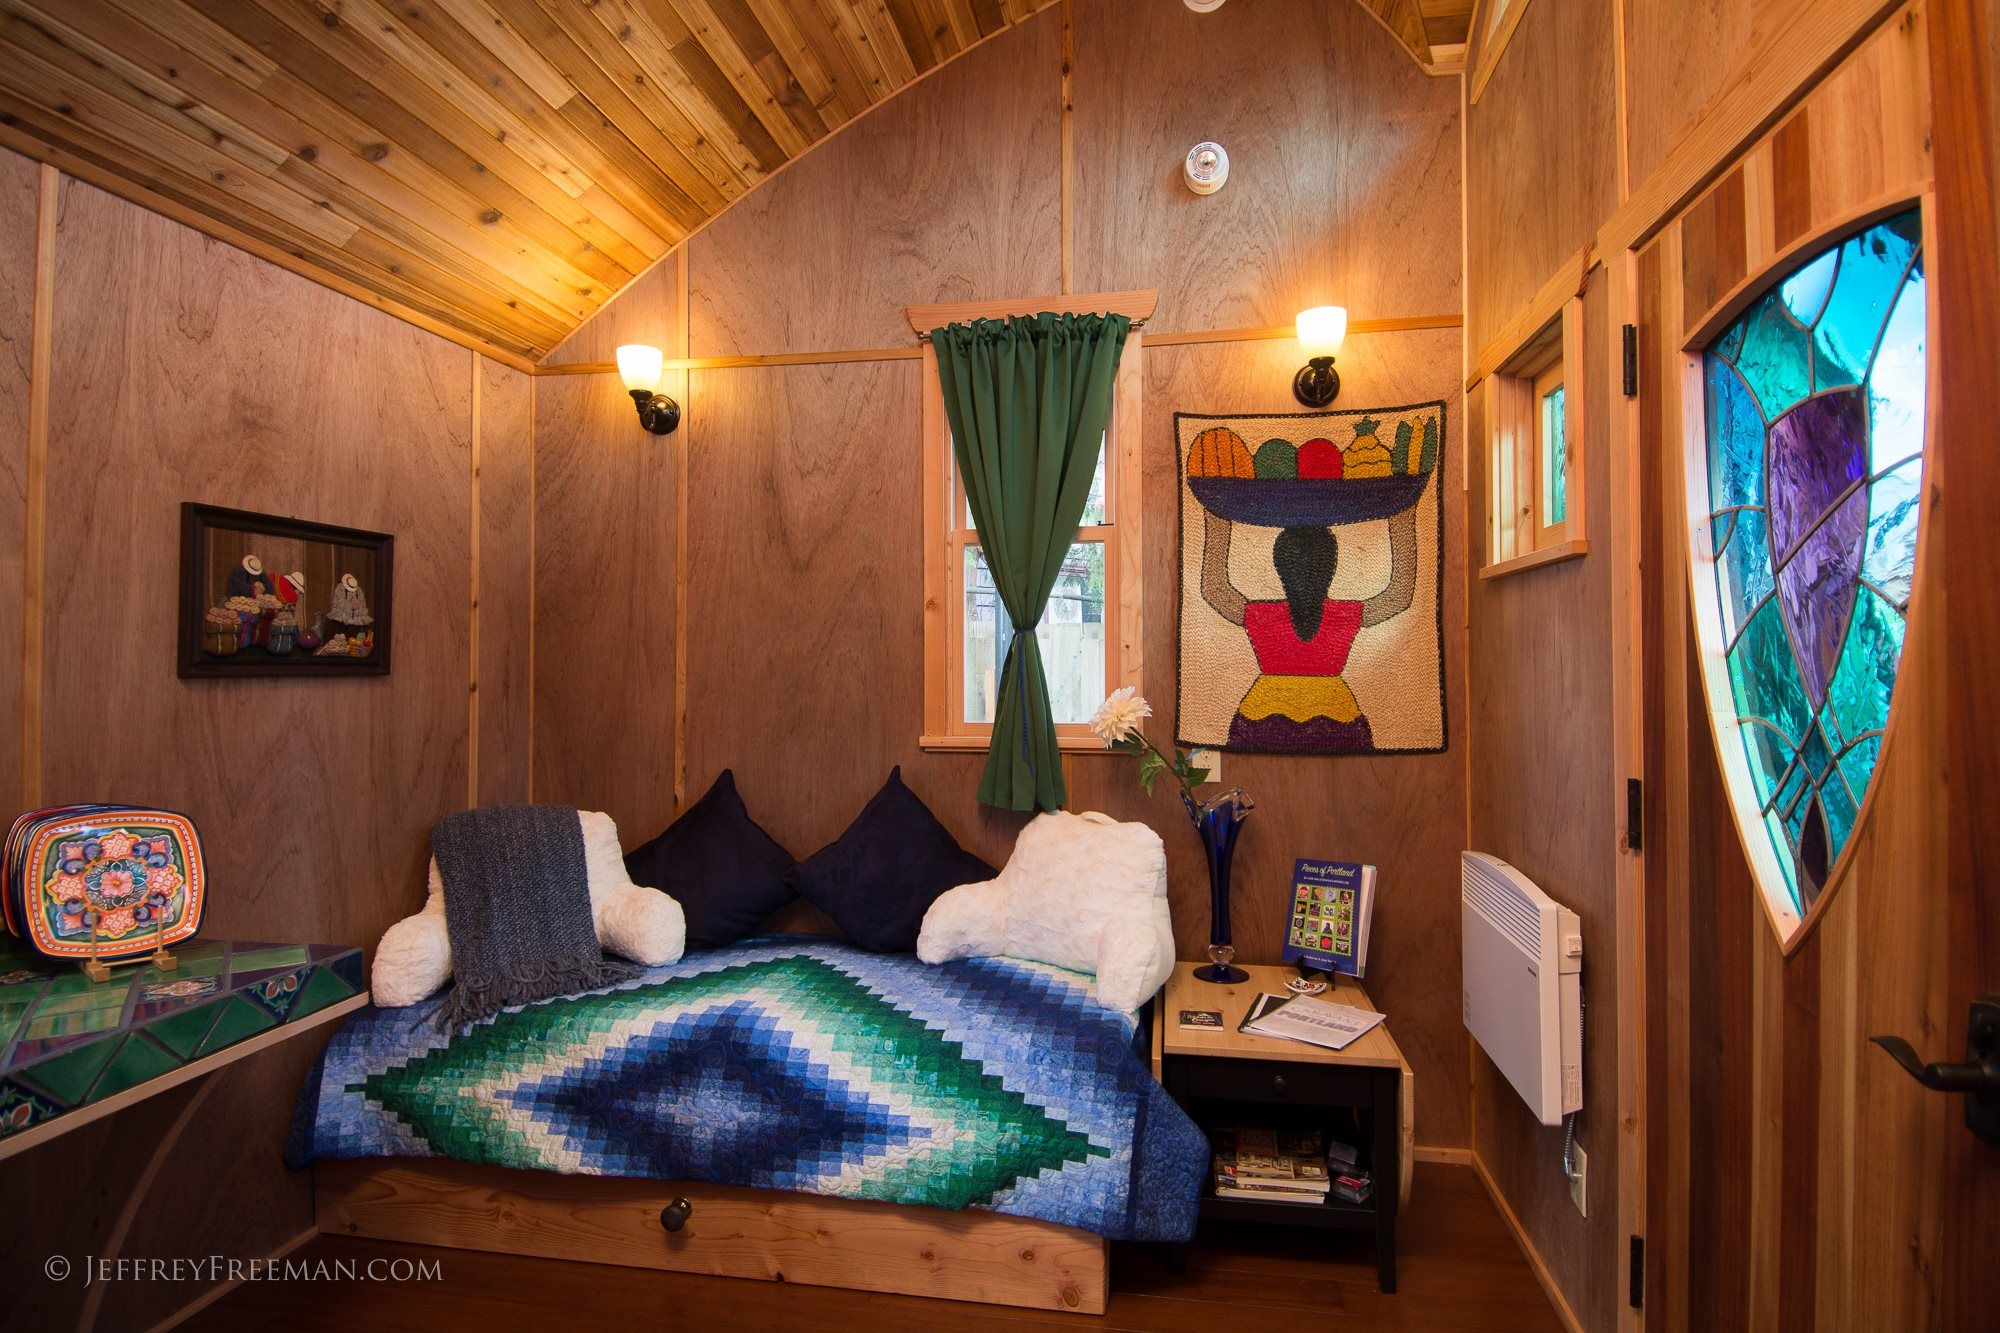 tiny house hotel pacifica 2 - The Hotel 大篷车 welcomes new wheelchair accessible tiny house